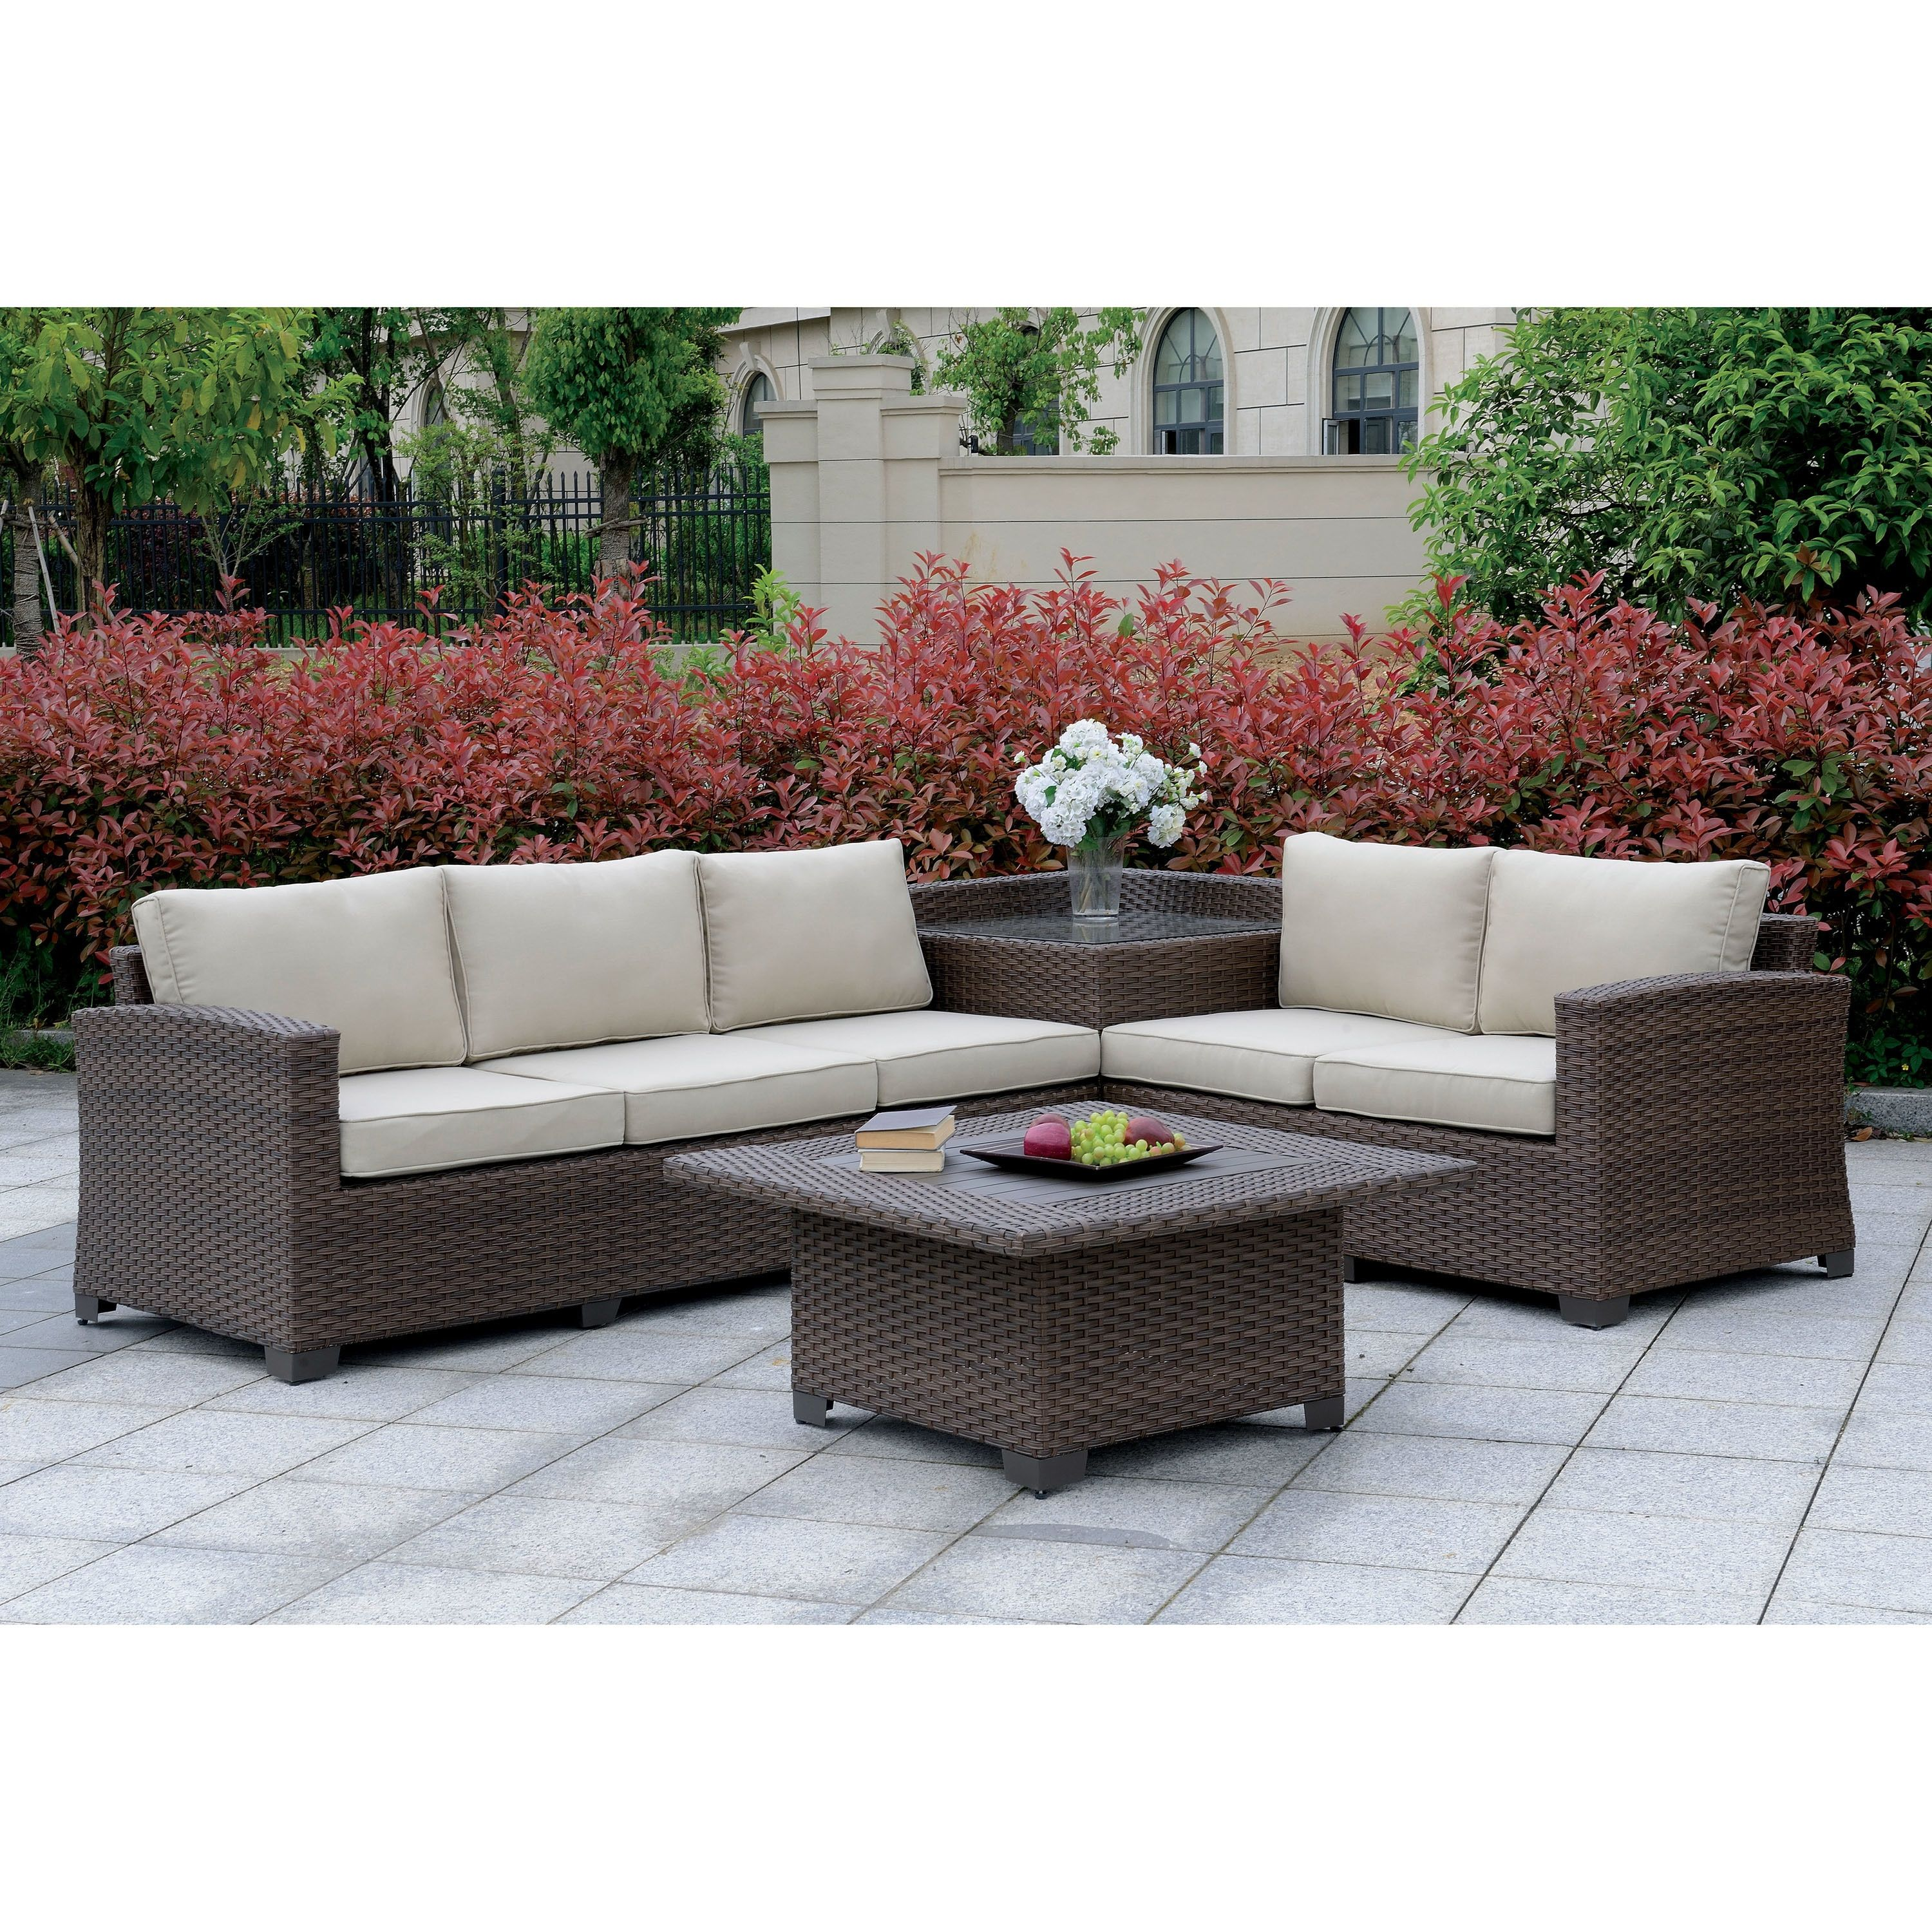 langston contemporary outdoor patio sectional with corner table by rh in pinterest com